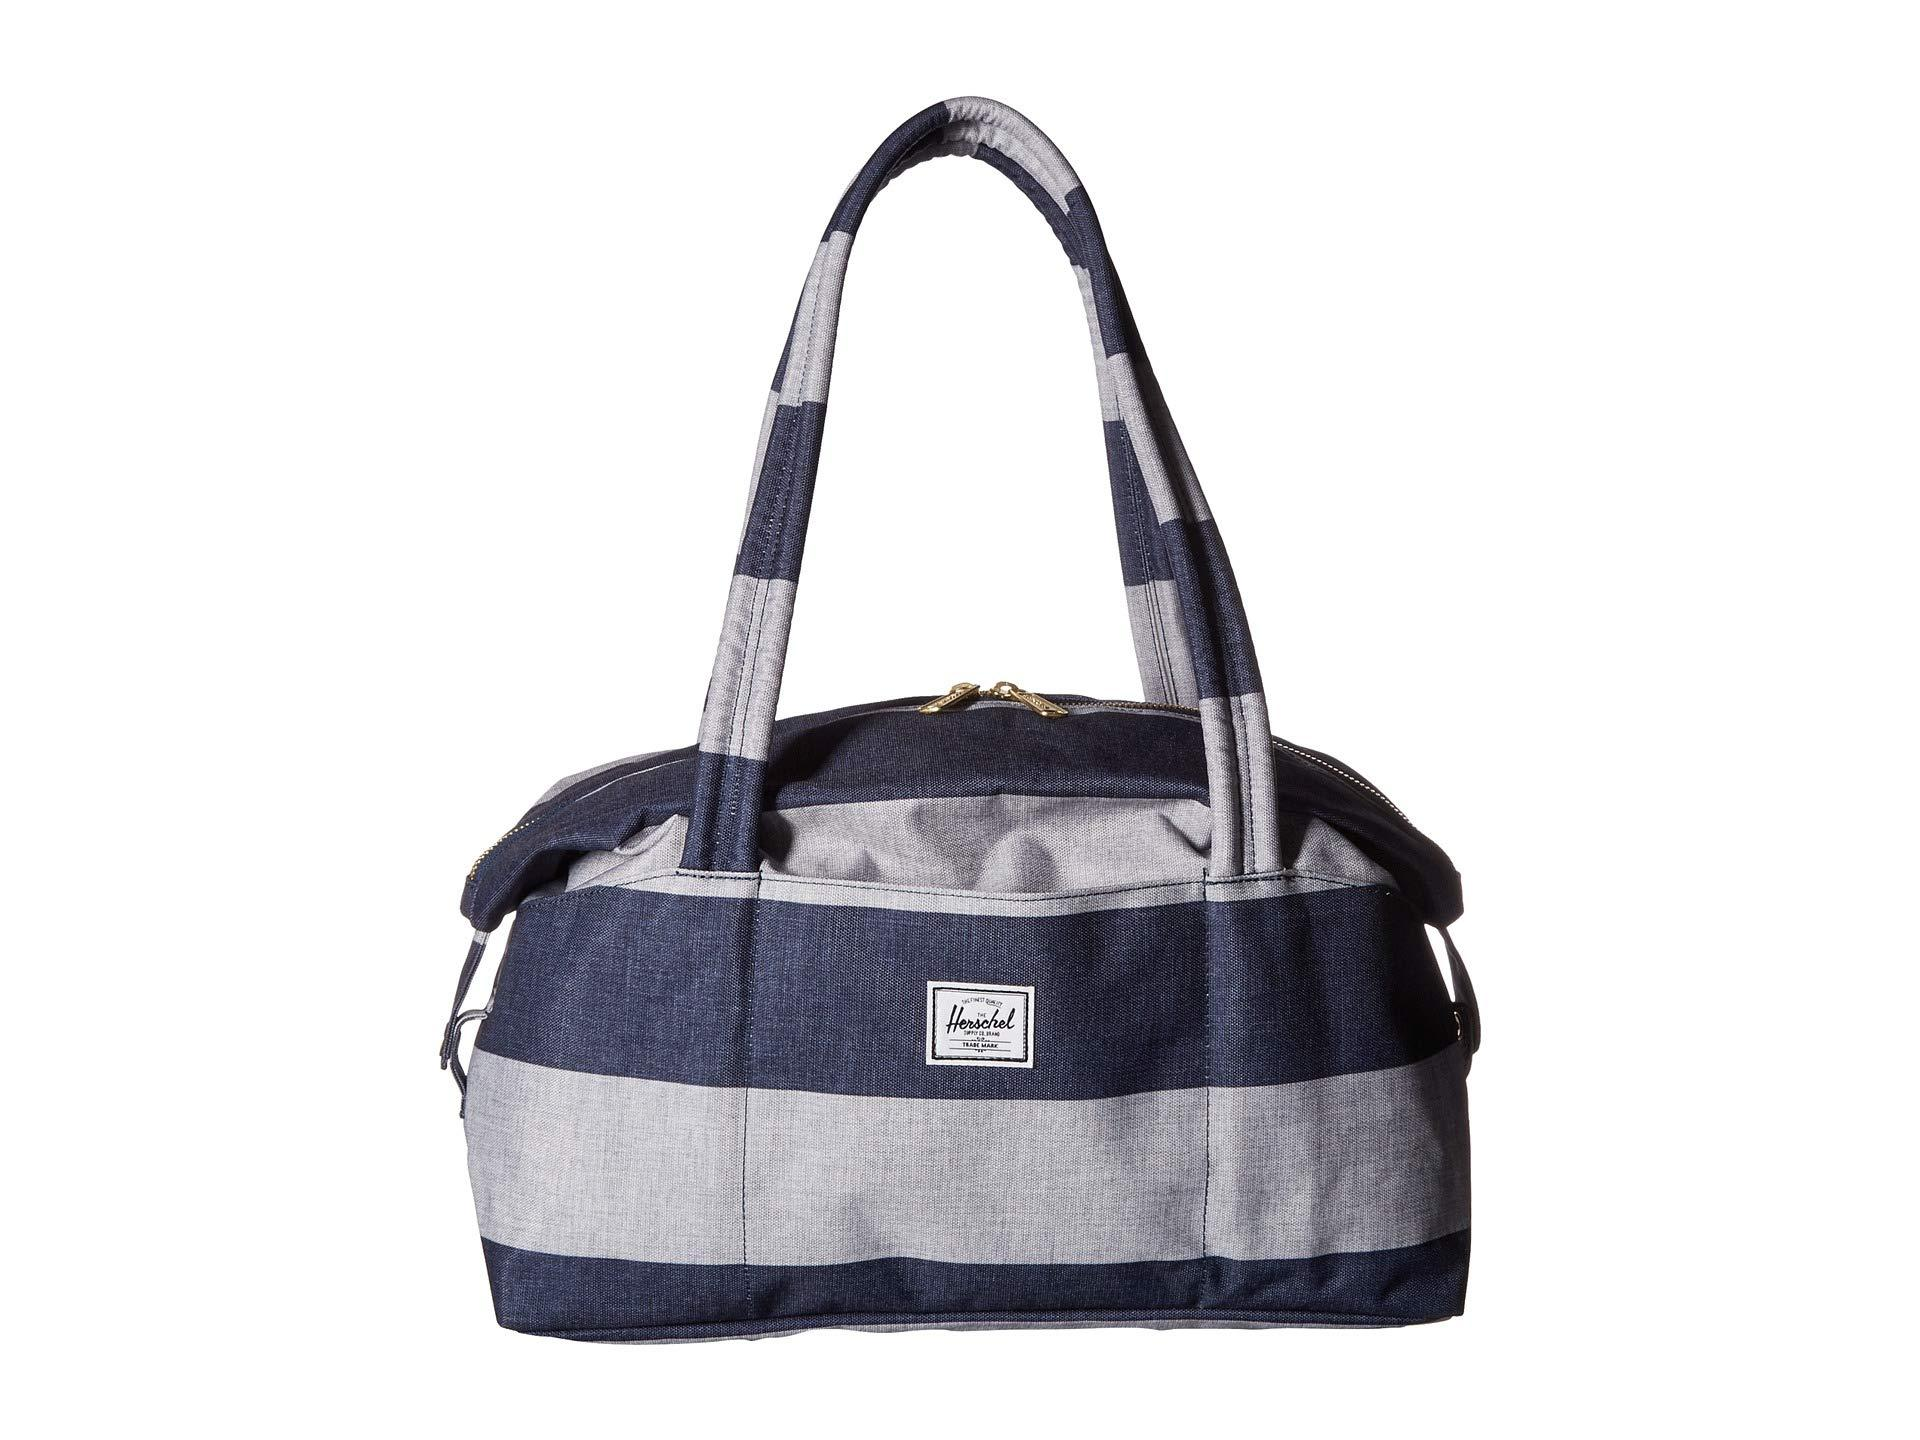 ef54ec485f24 Lyst - Herschel Supply Co. Strand X-small (border Stripe) Tote ...